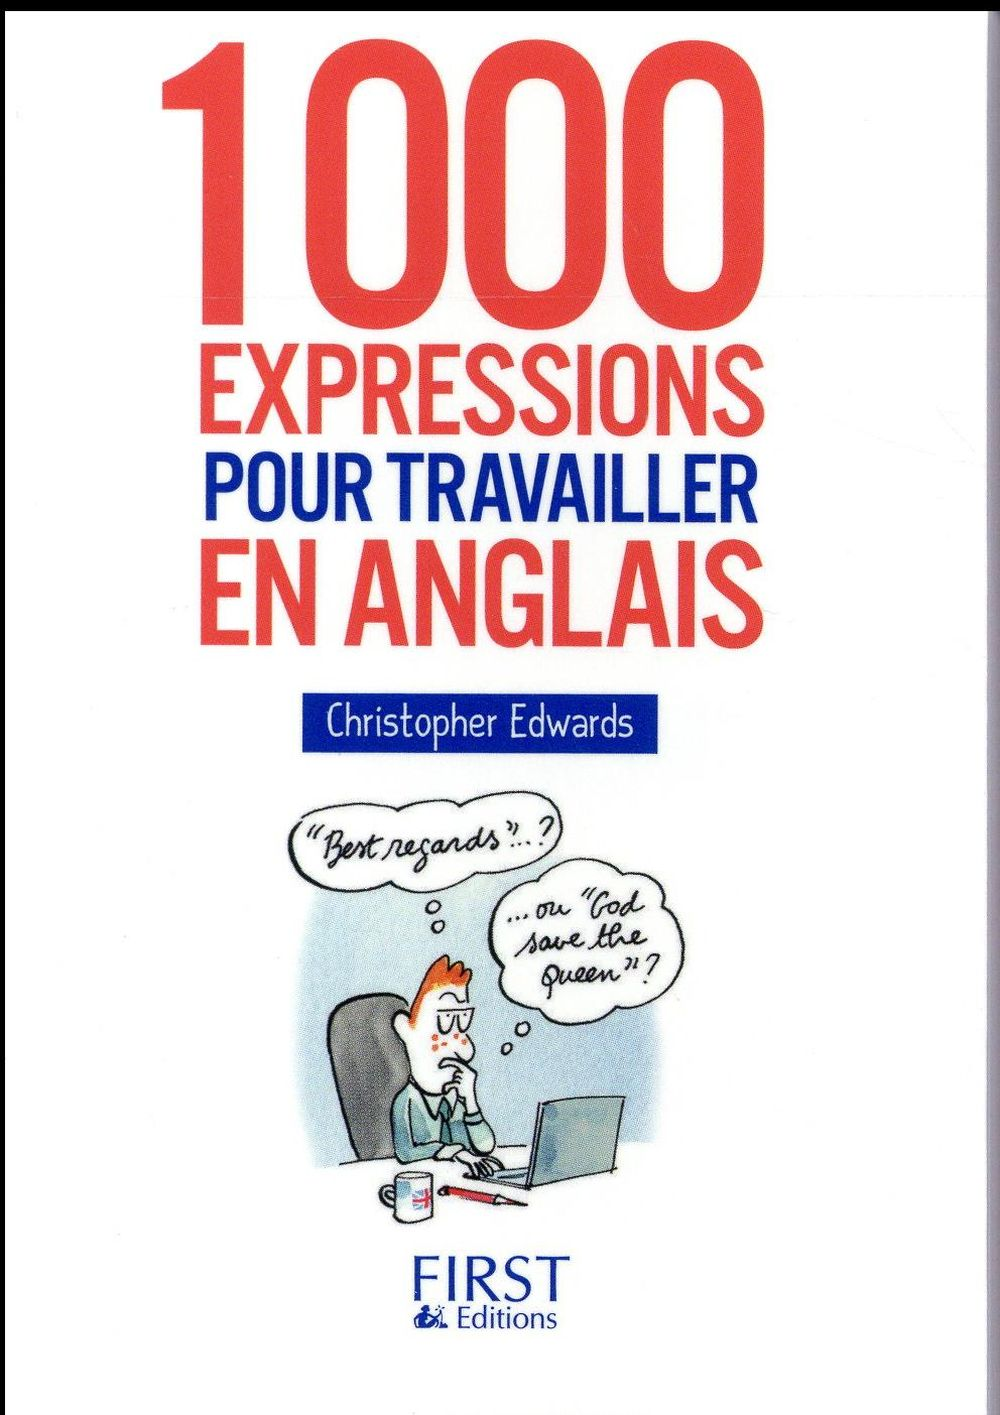 1000 EXPRESSIONS POUR TRAVAILLER EN ANGLAIS Edwards Christopher First Editions